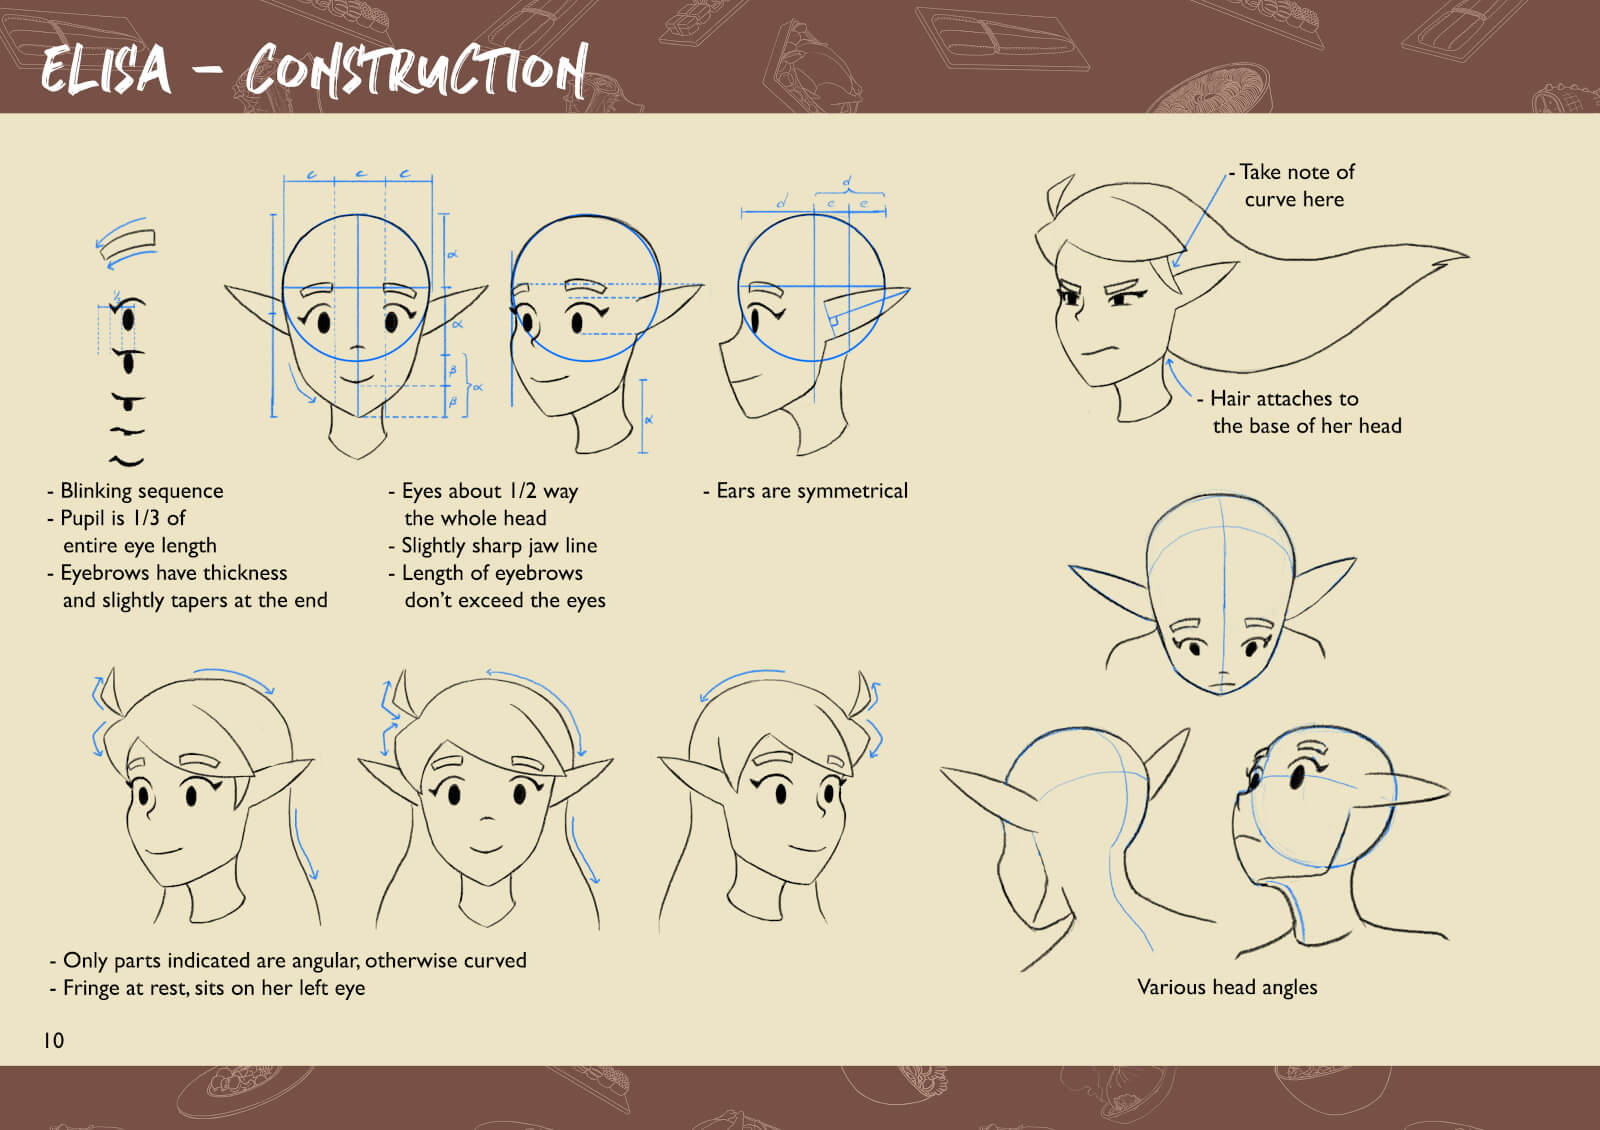 Sketches of elf character's head